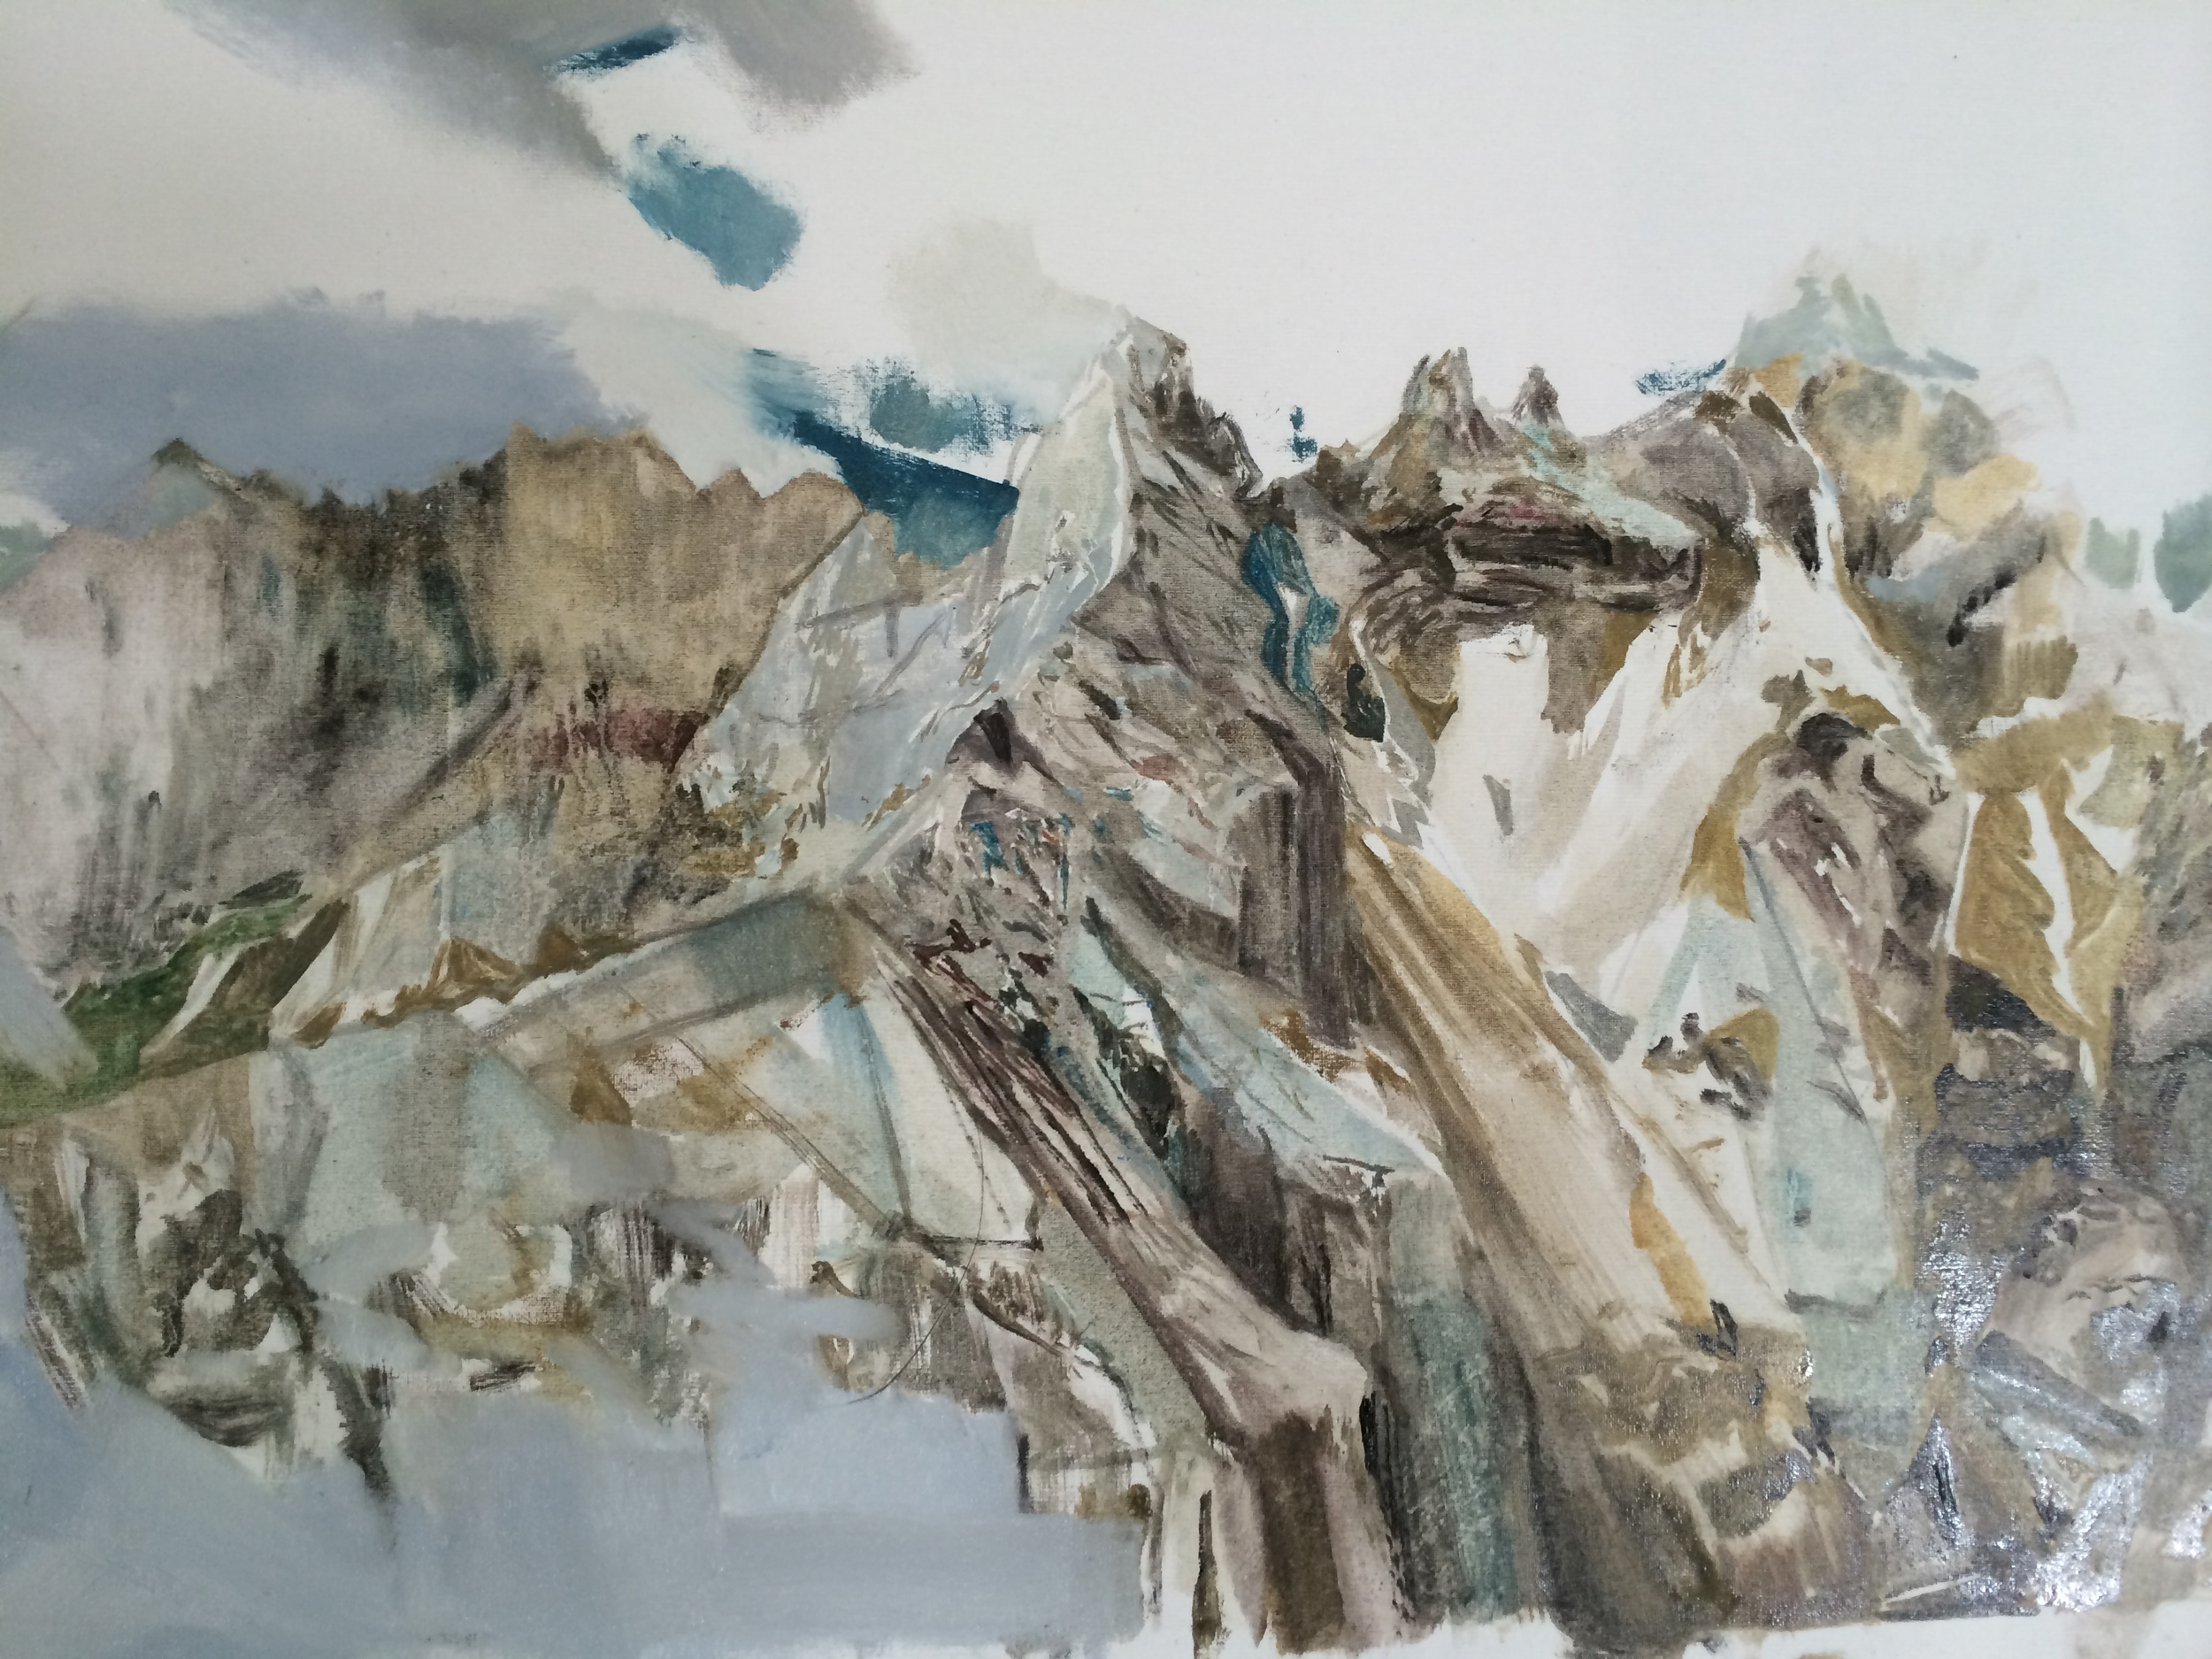 2014 Untitled VIII (Marmolada), oil on canvas 18x13 inches